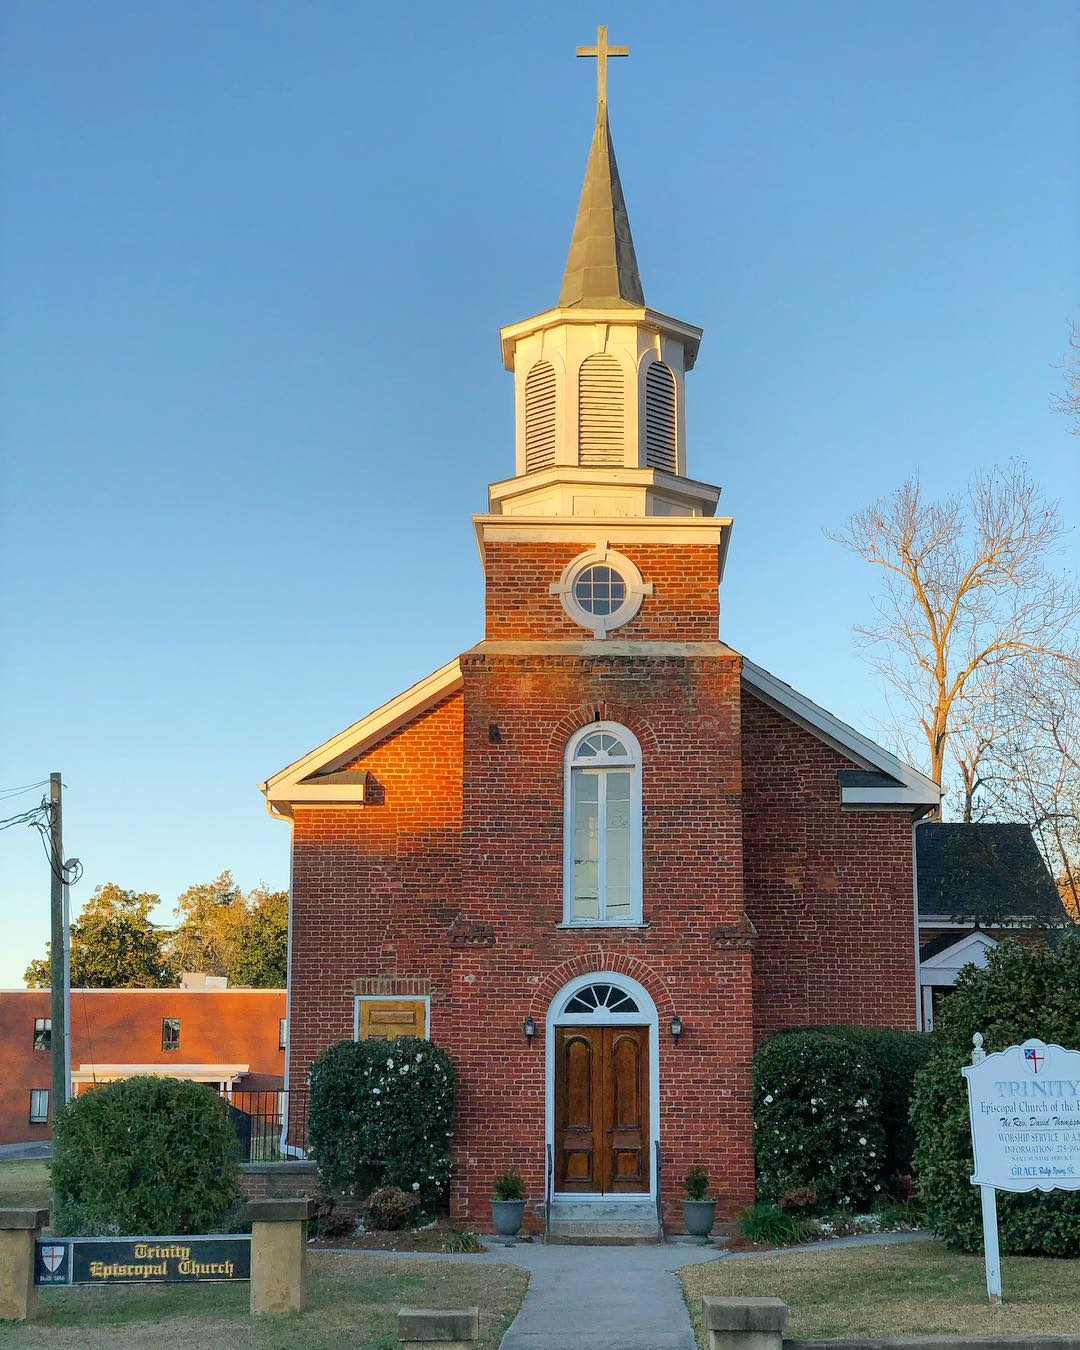 Trinity Episcopal Church was built in 1836. It is the oldest church building still standing in the town of Edgefield